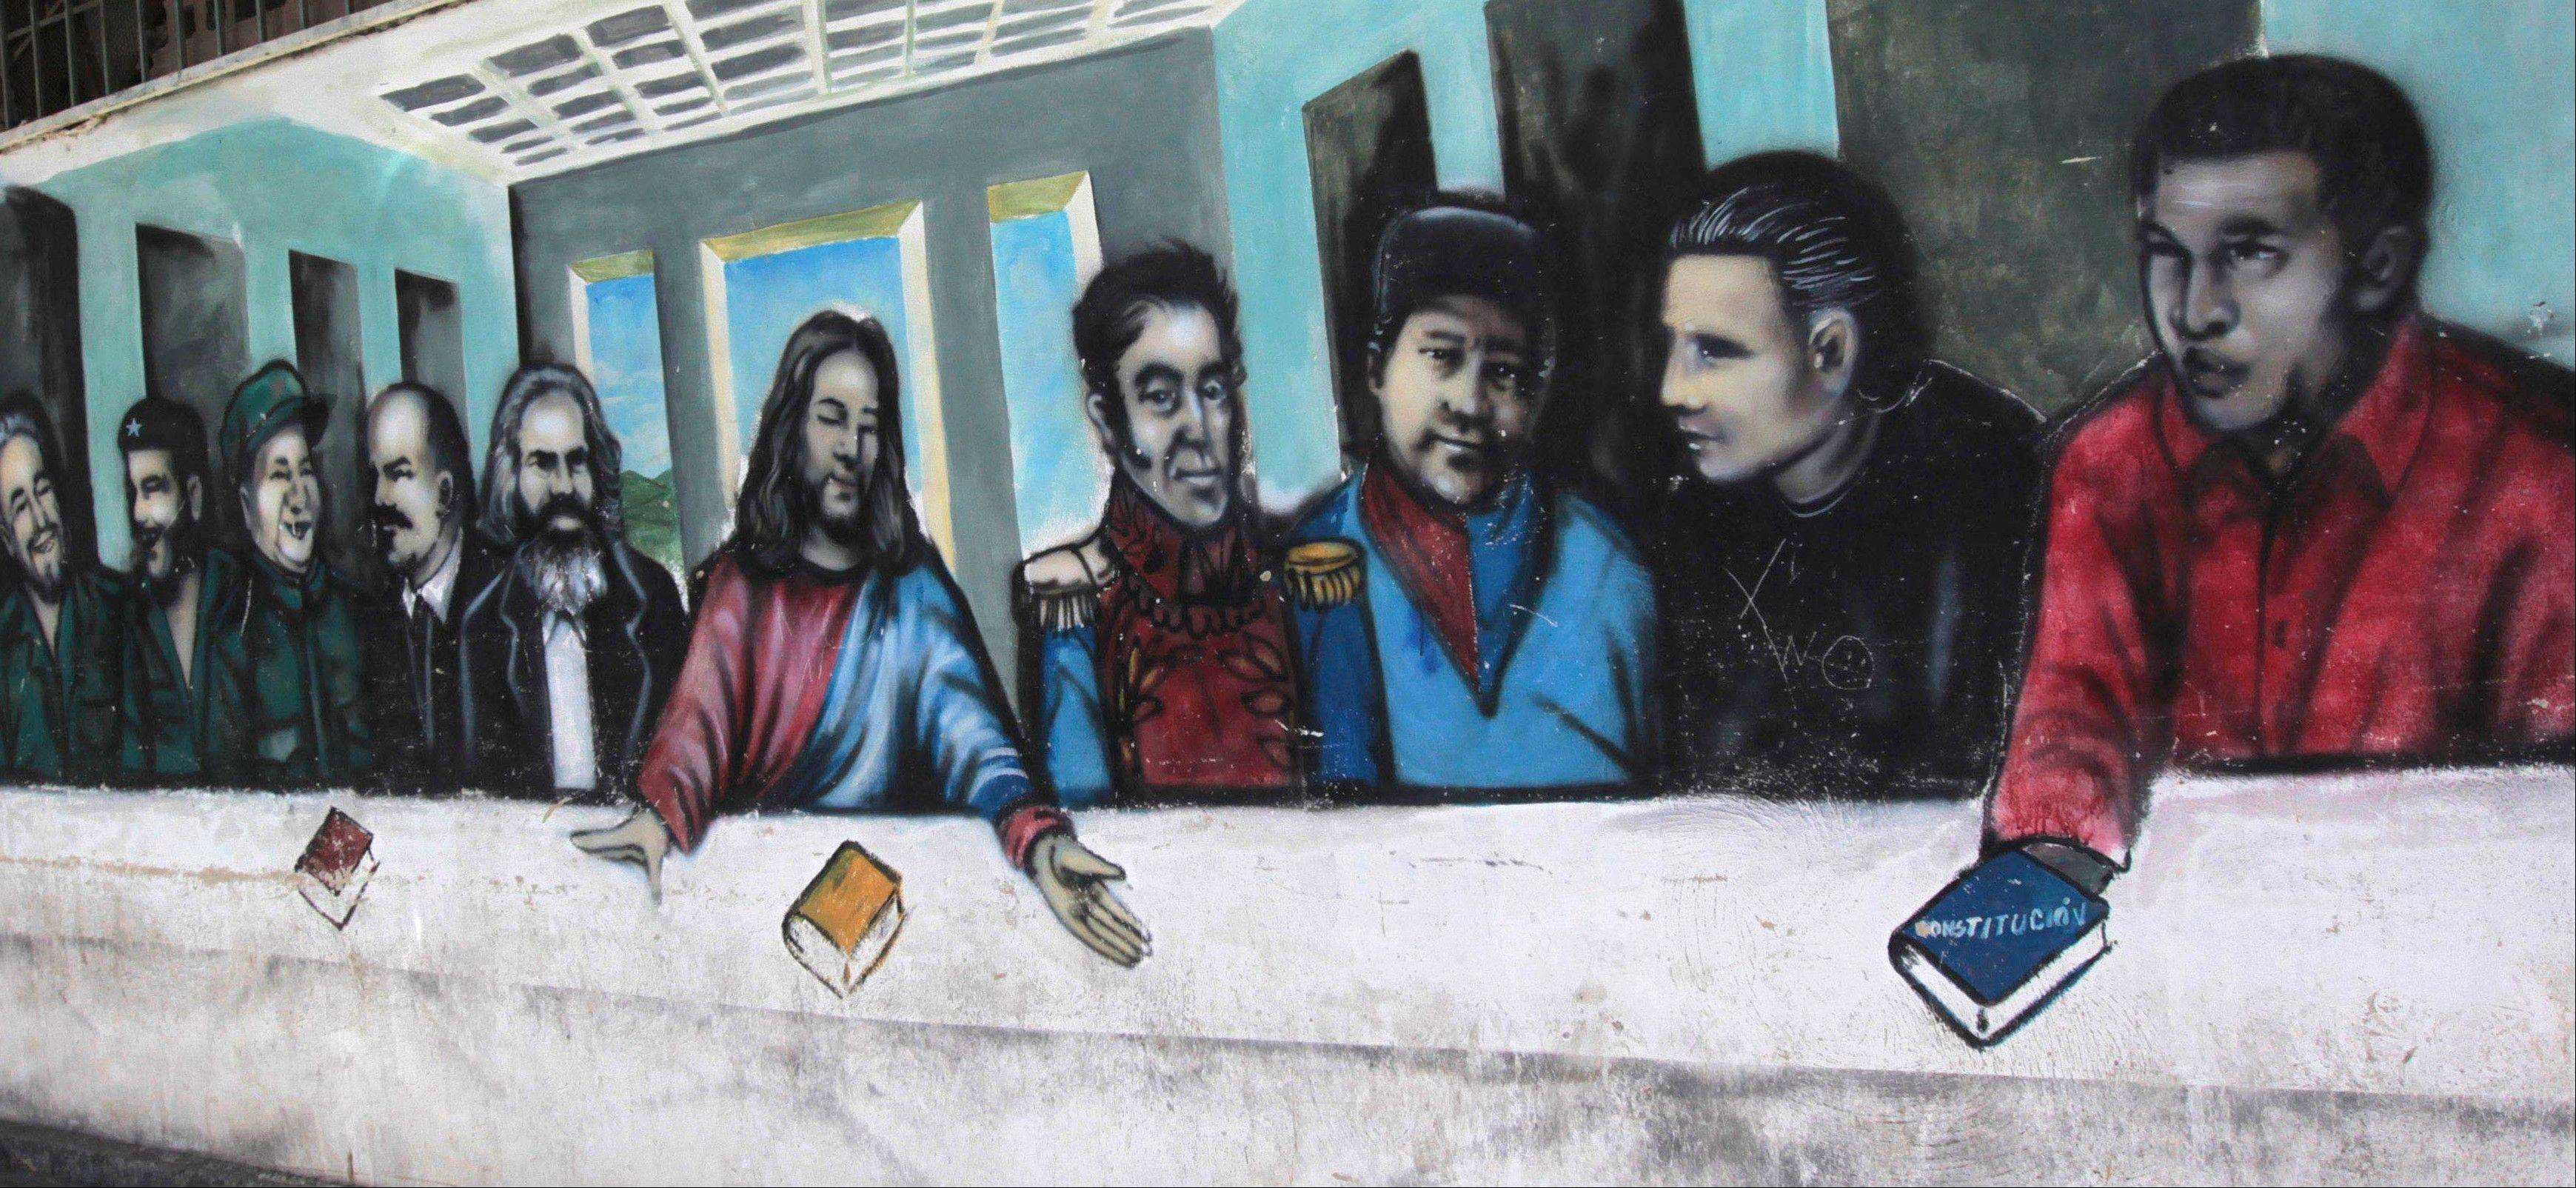 Associated Press/March 5, 2012 A mural imitating the religious painting The Last Supper covers a wall of a popular housing complex, showing from left to right, Fidel Castro, Ernesto �Che� Guevara, Mao Tse-tung, Vladimir Lenin, Karl Marx, Jesus Christ, Simon Bolivar, Venezuelan rebel fighters Alexis Gonzalez and Fabricio Ojeda and Venezuela�s President Hugo Chavez in Caracas, Venezuela.